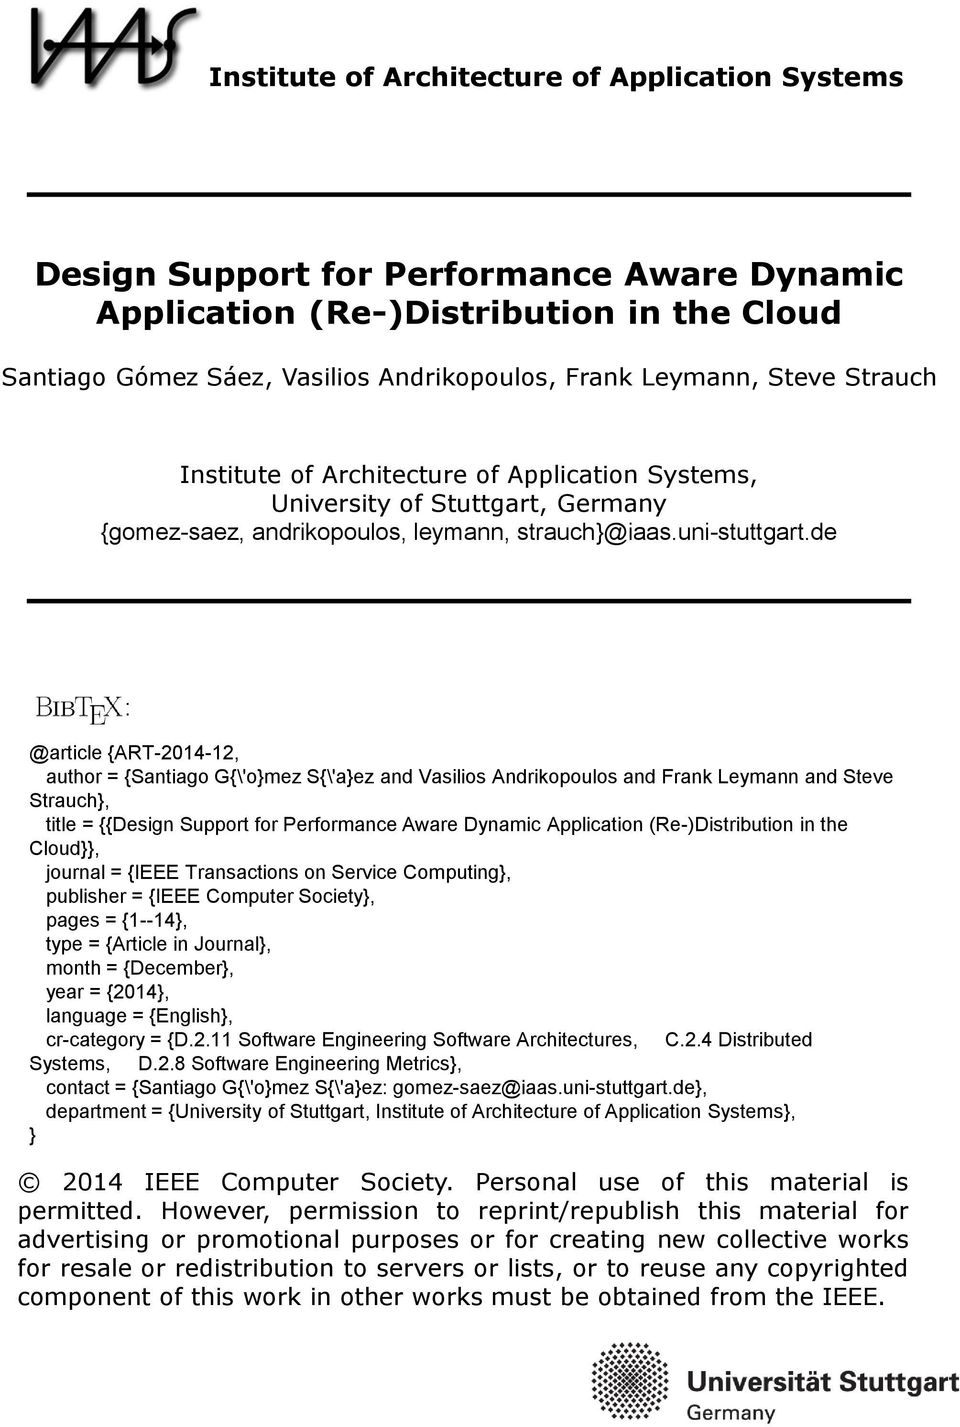 de : @article {ART-2014-12, author = {Santiago G{\'o}mez S{\'a}ez and Vasilios Andrikopoulos and Frank Leymann and Steve Strauch}, title = {{Design Support for Performance Aware Dynamic